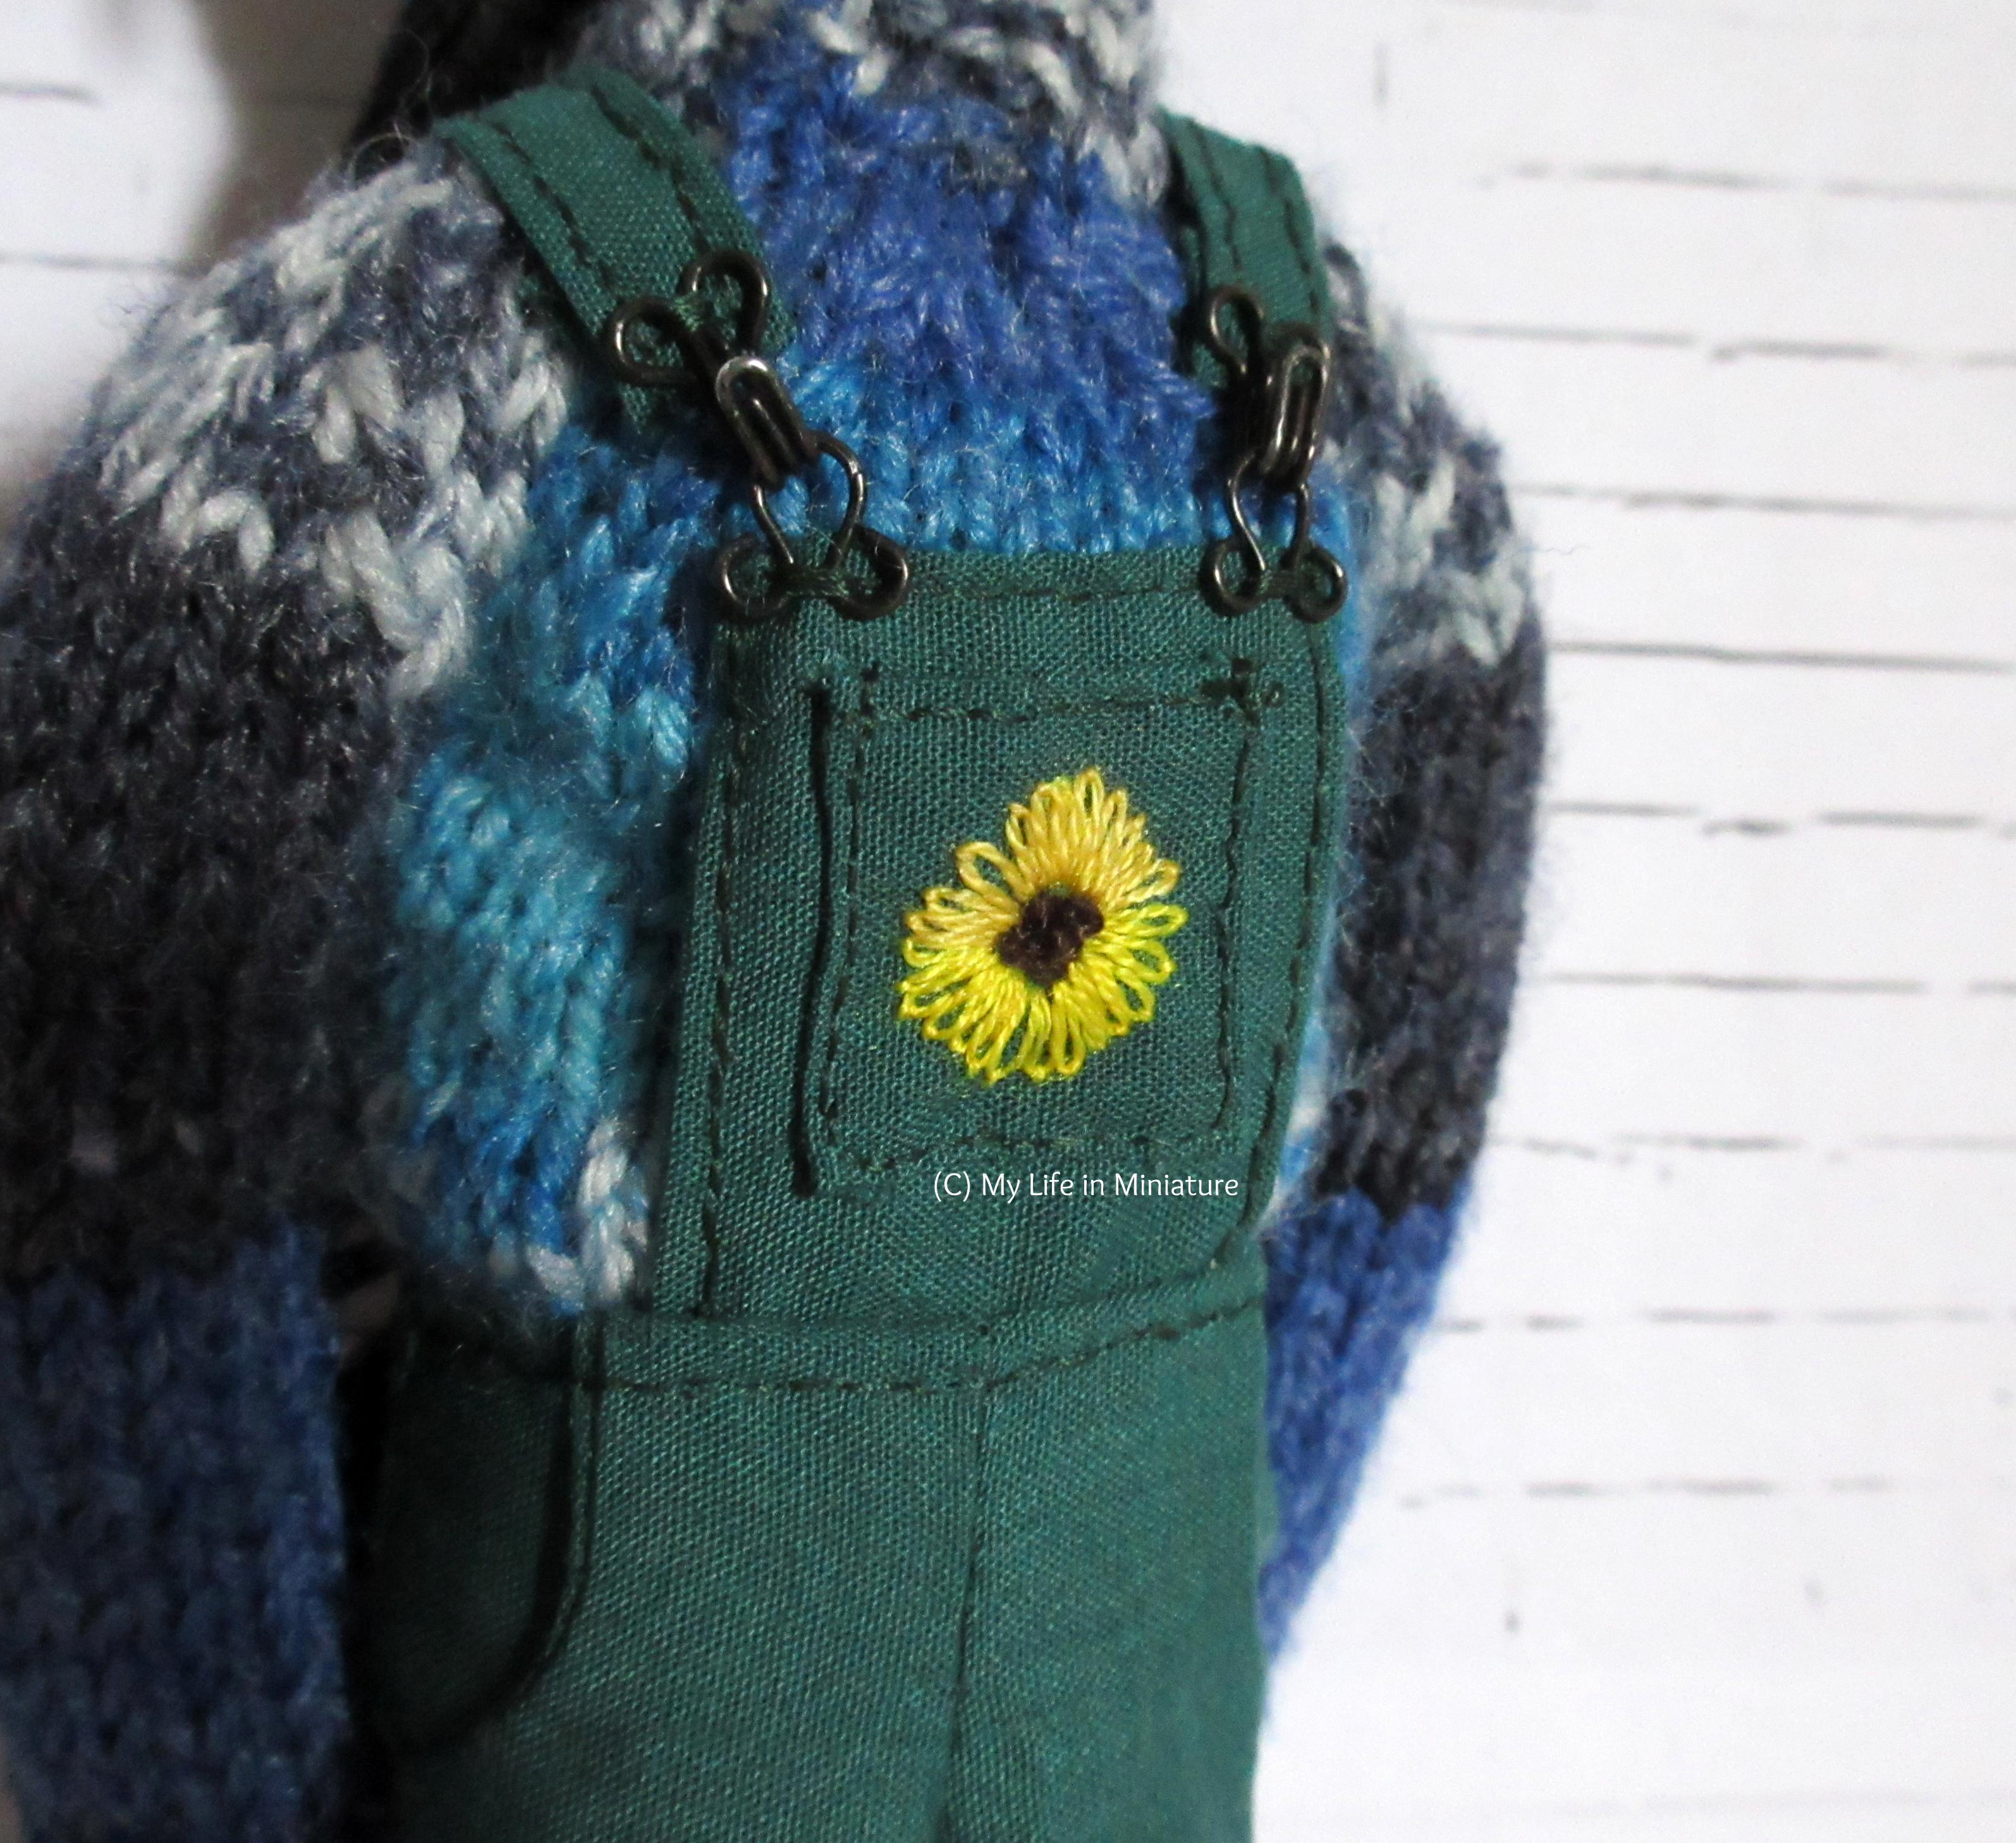 Close-up of the sunflower embroidered on the front pocket of the dungarees.